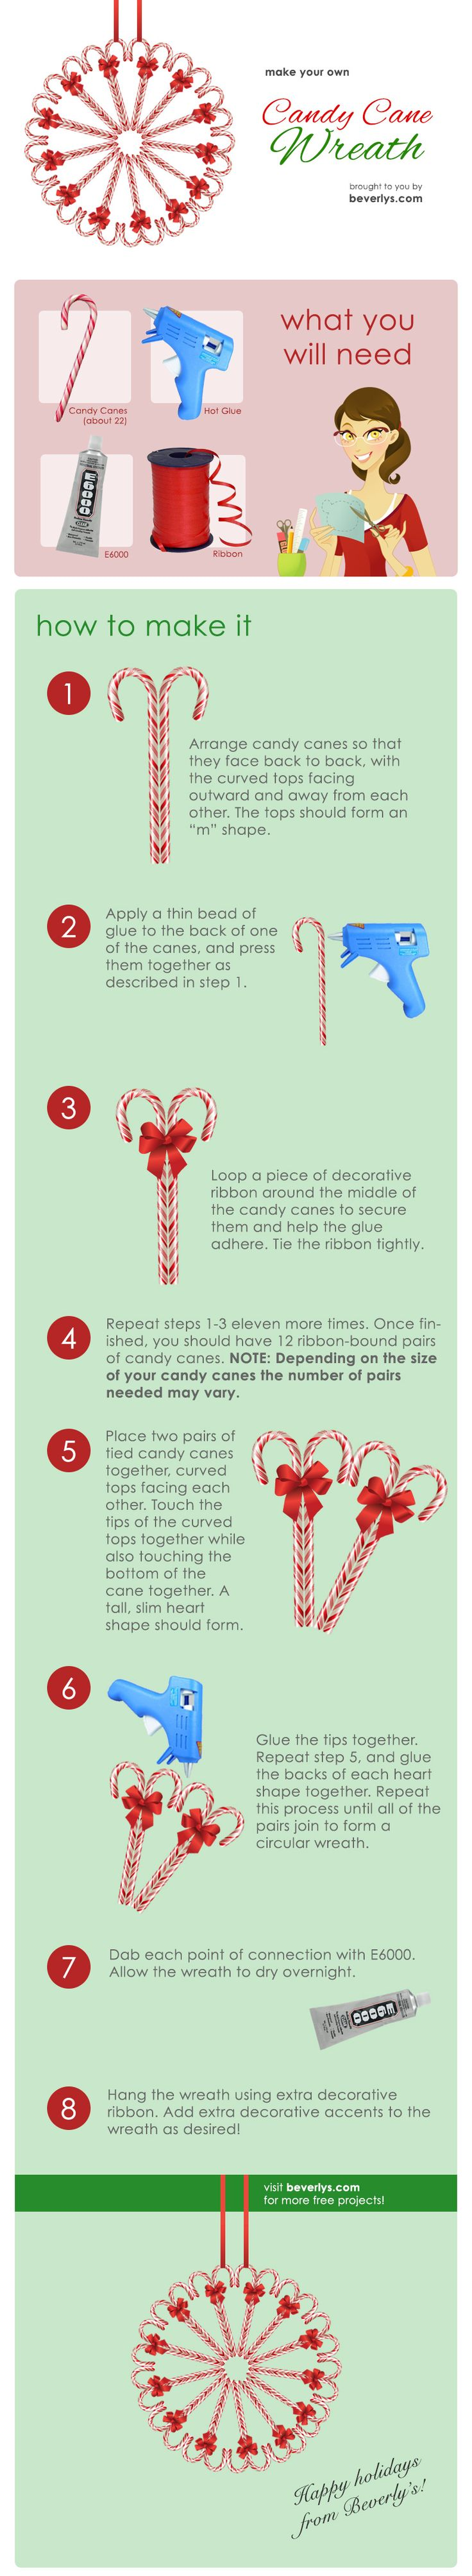 Pin and re-pin this awesome infographic that shows how to create our beloved Candy Cane Wreath! Just in time for the holiday season.